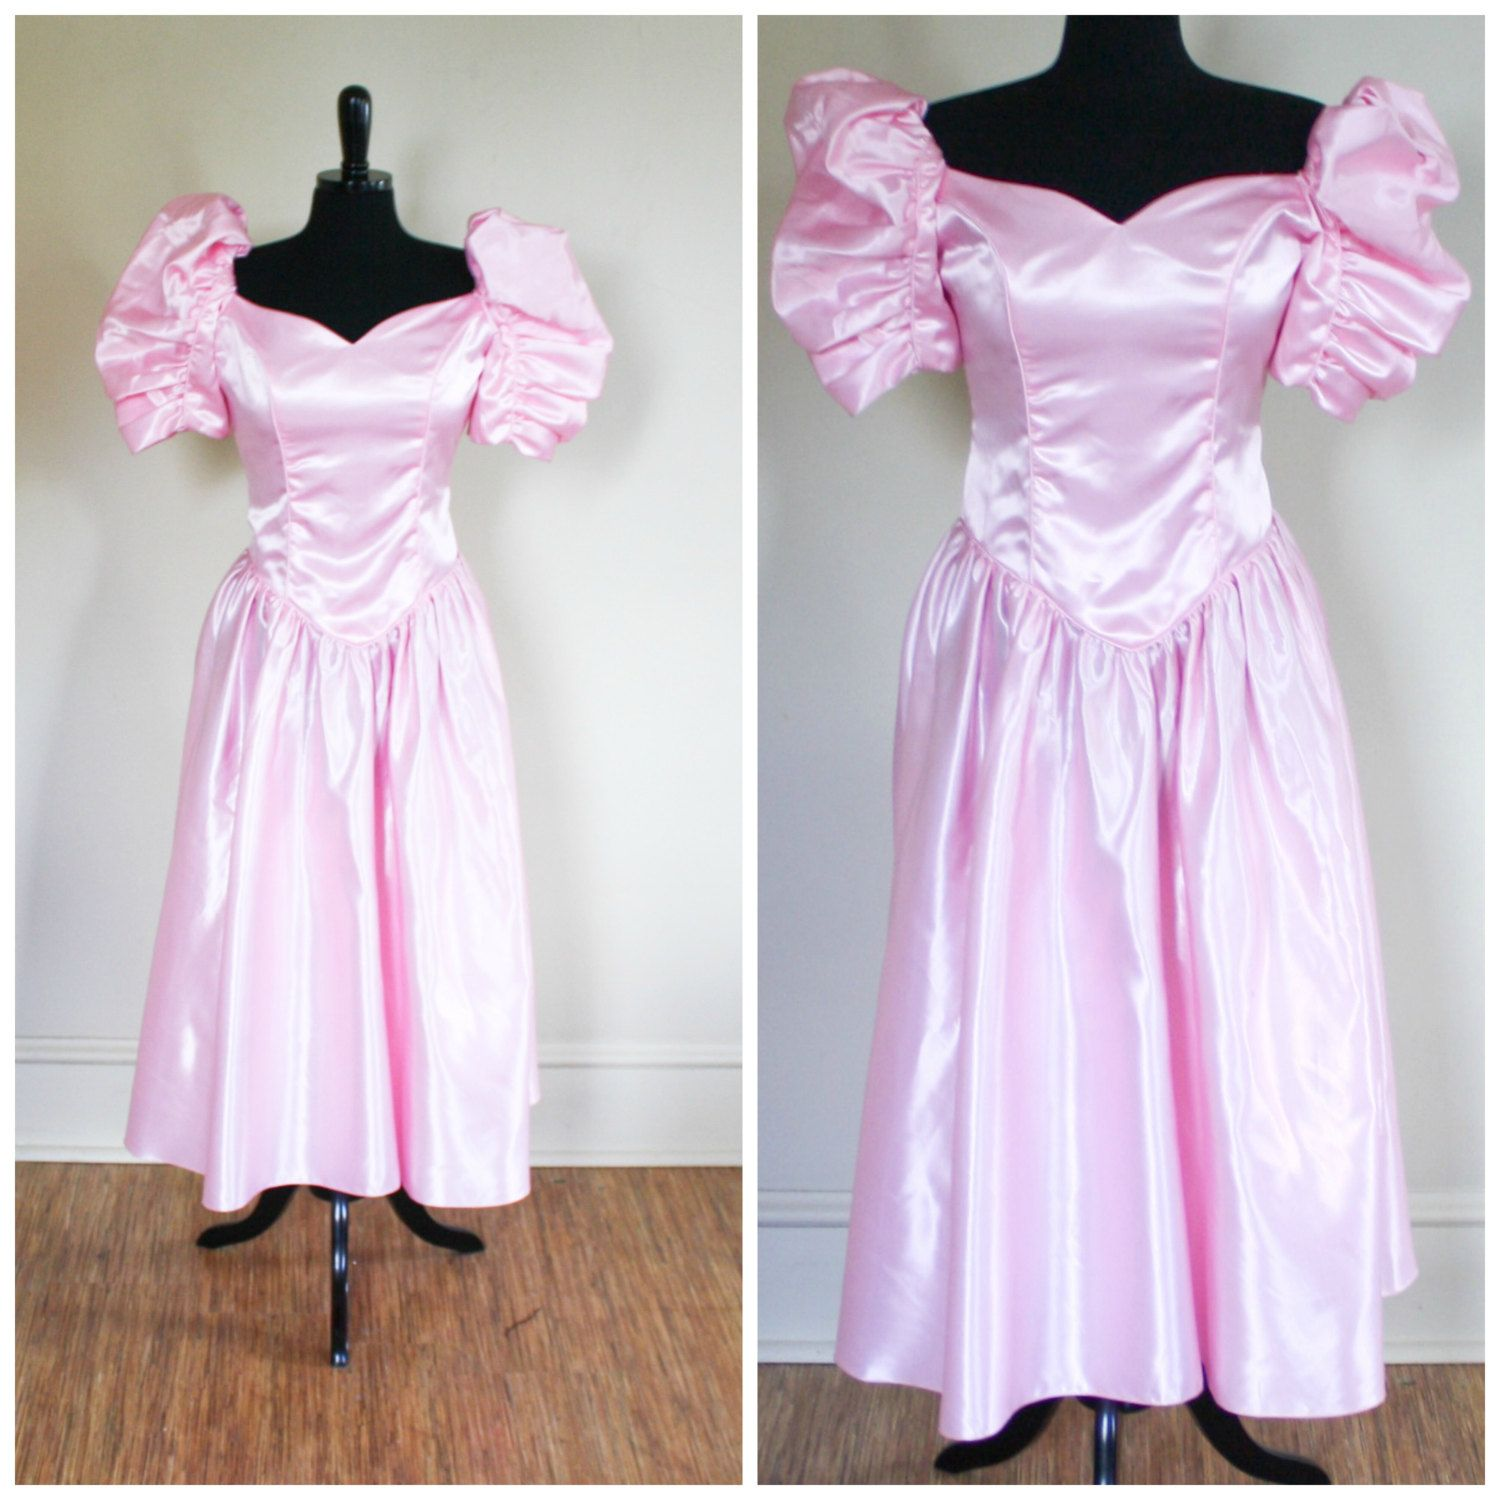 645d770ea9d80 Vintage 1980s Pink Princess Prom Gown Shiny Metalic Puff Sleeves Tea Length  by TempleKatVintage on Etsy